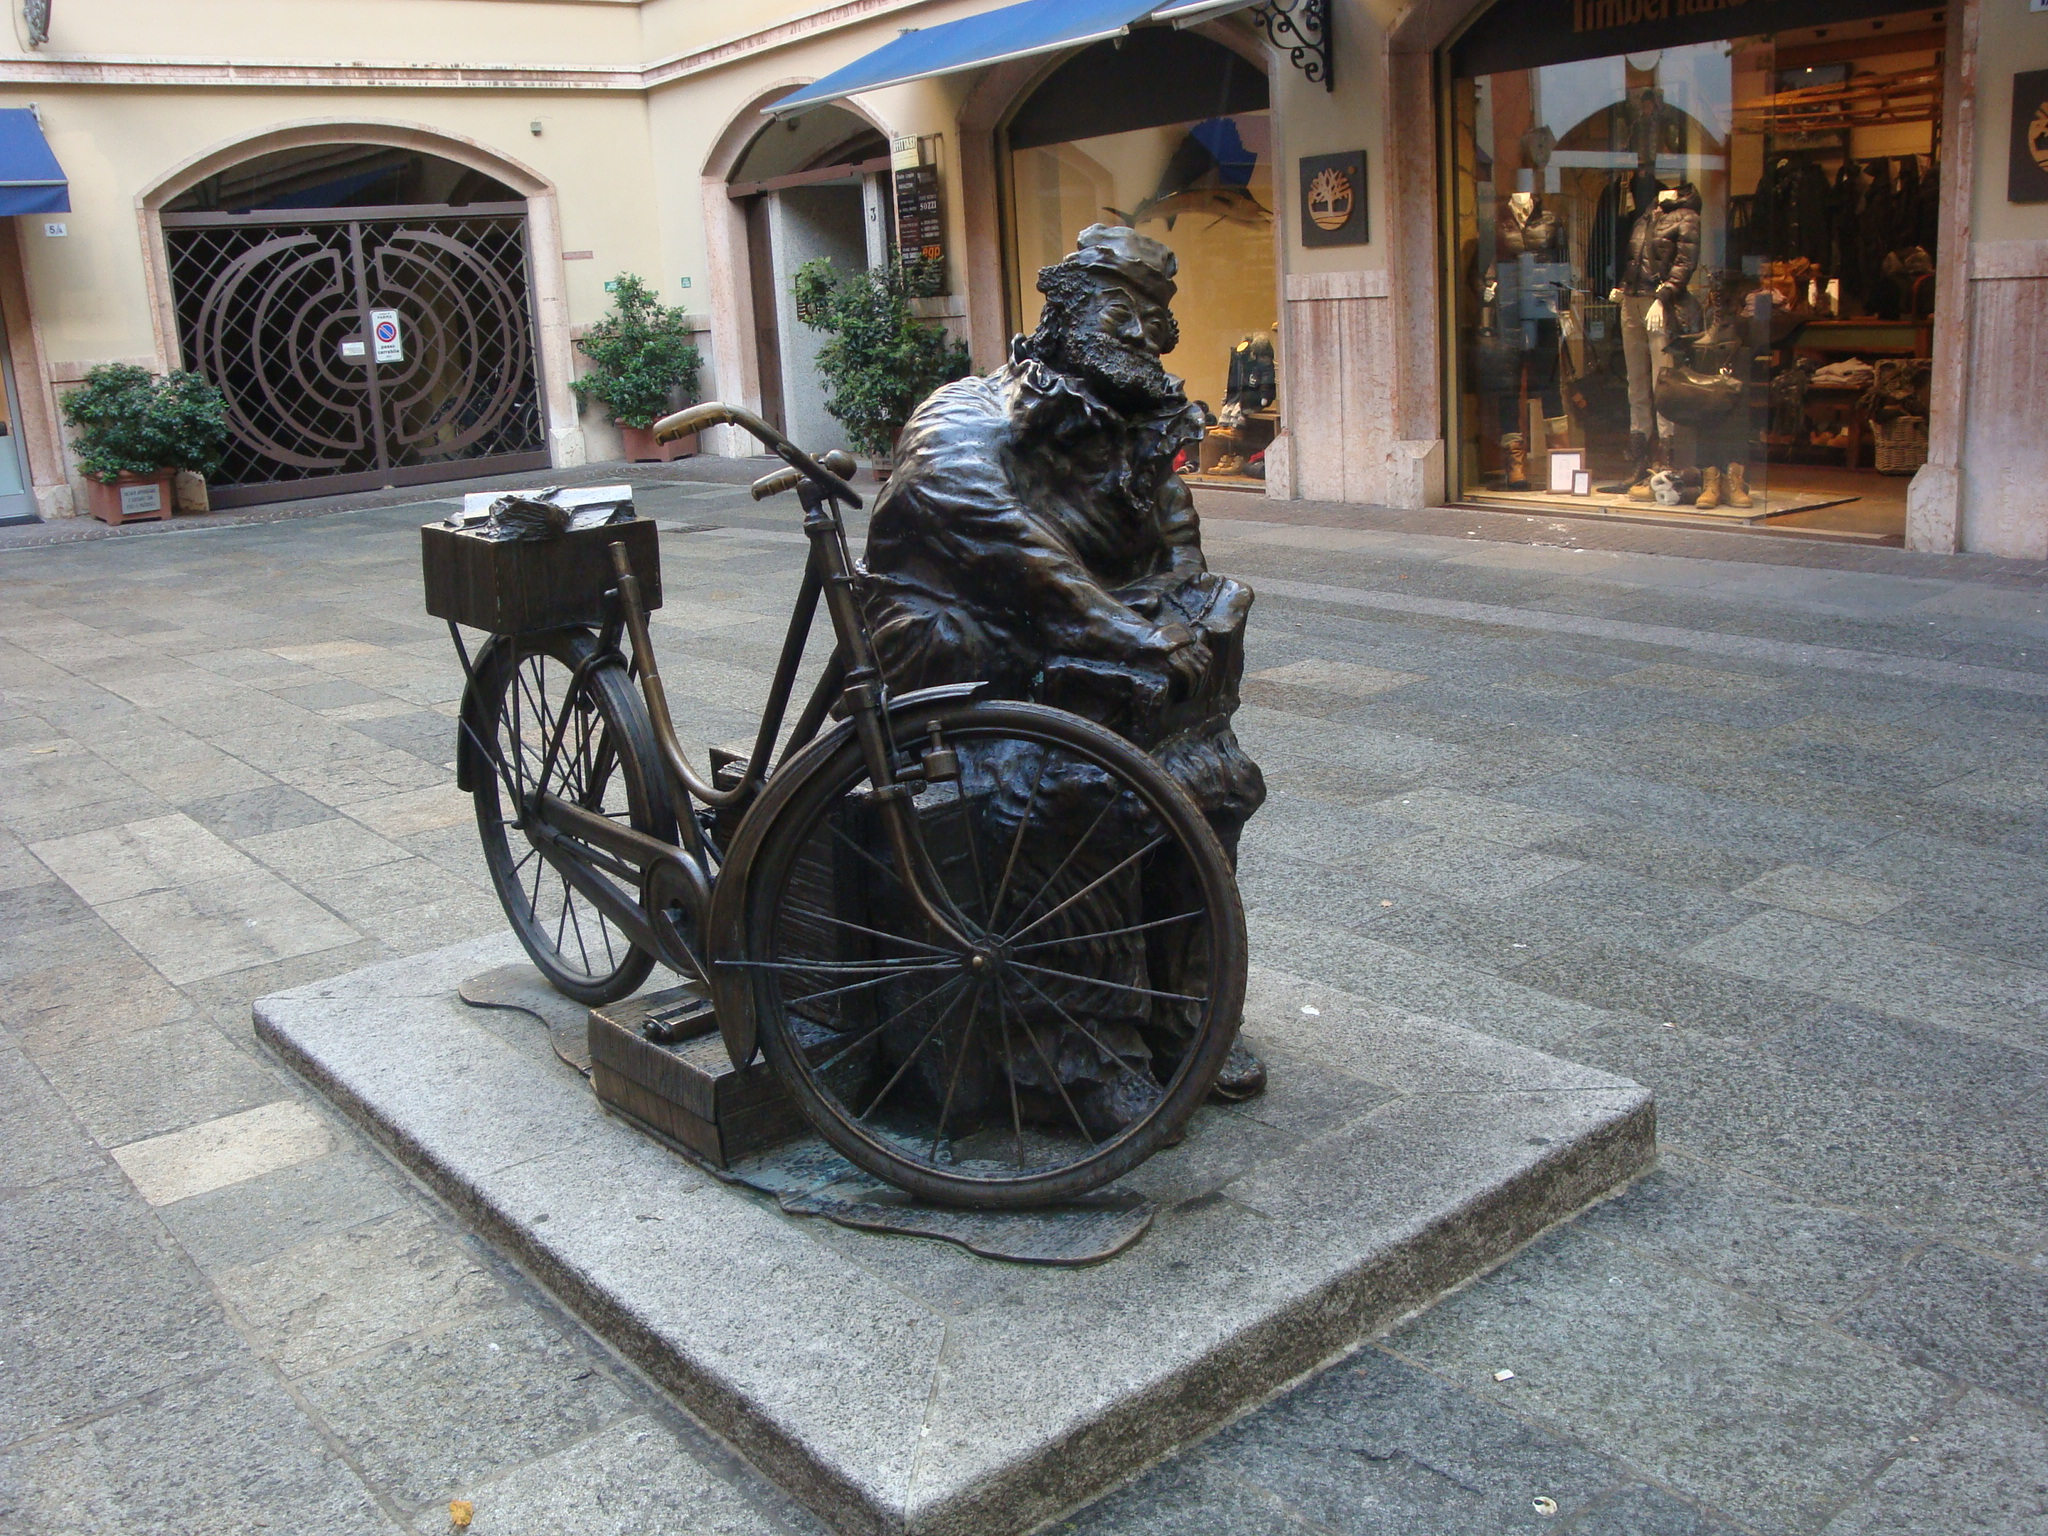 Our favorite statue, of a homeless man who lived in this piazza. Erected by the residents.